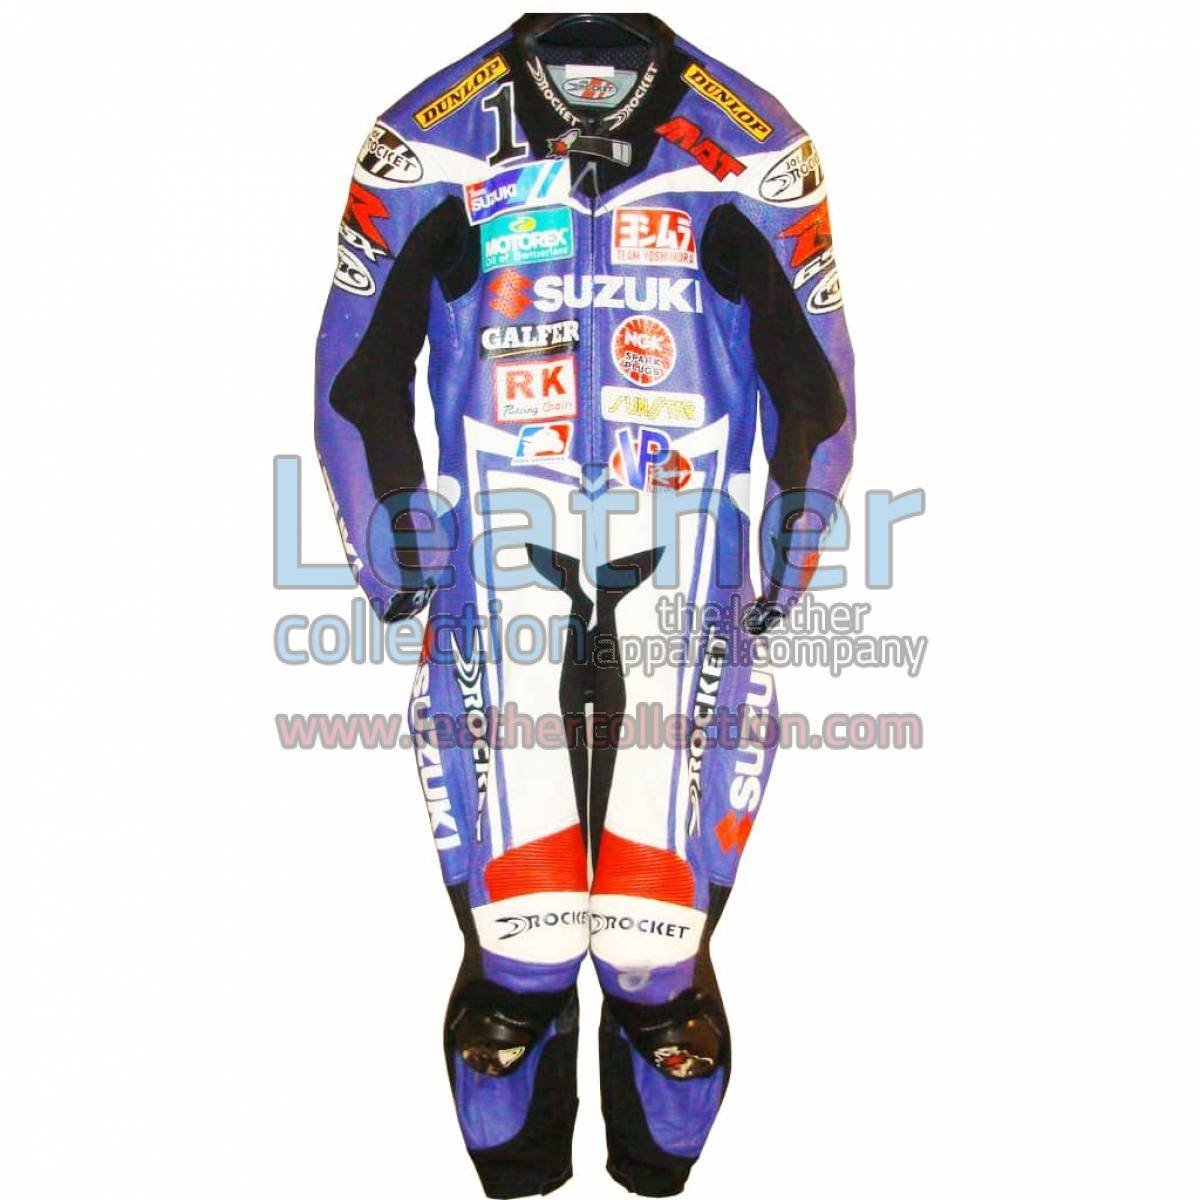 Mat Mladin Suzuki AMA 2005 Leather Suit